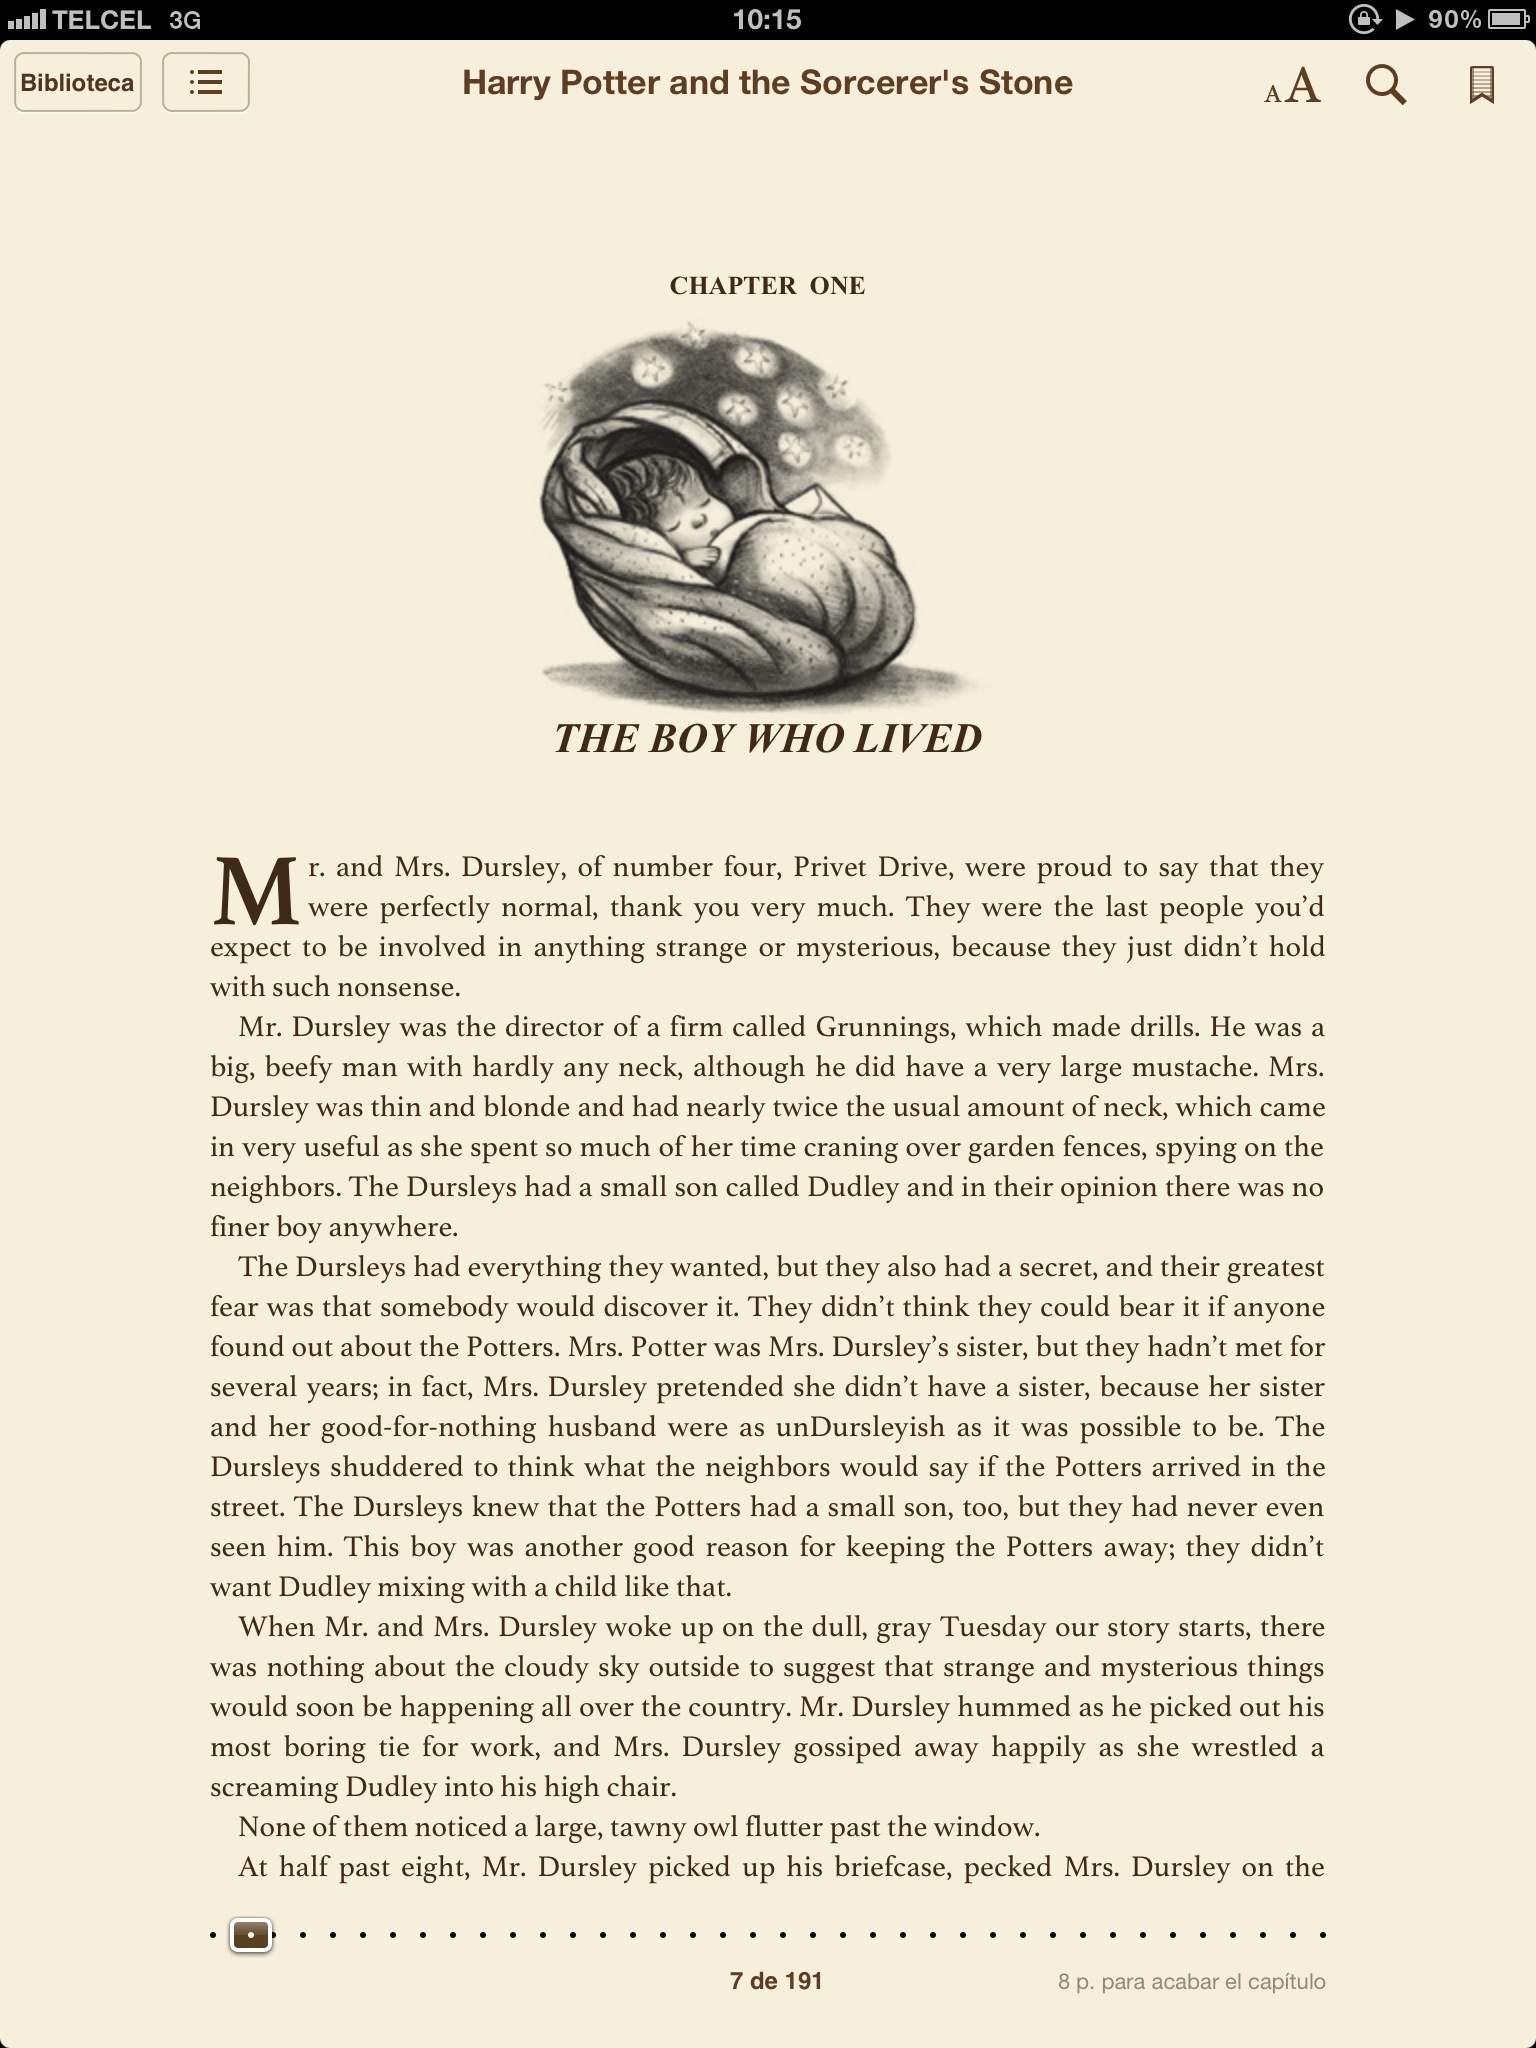 Paginas De Los Libros De Harry Potter Los Libros De Harry Potter Para Iphone Ipad Etc Ebooks